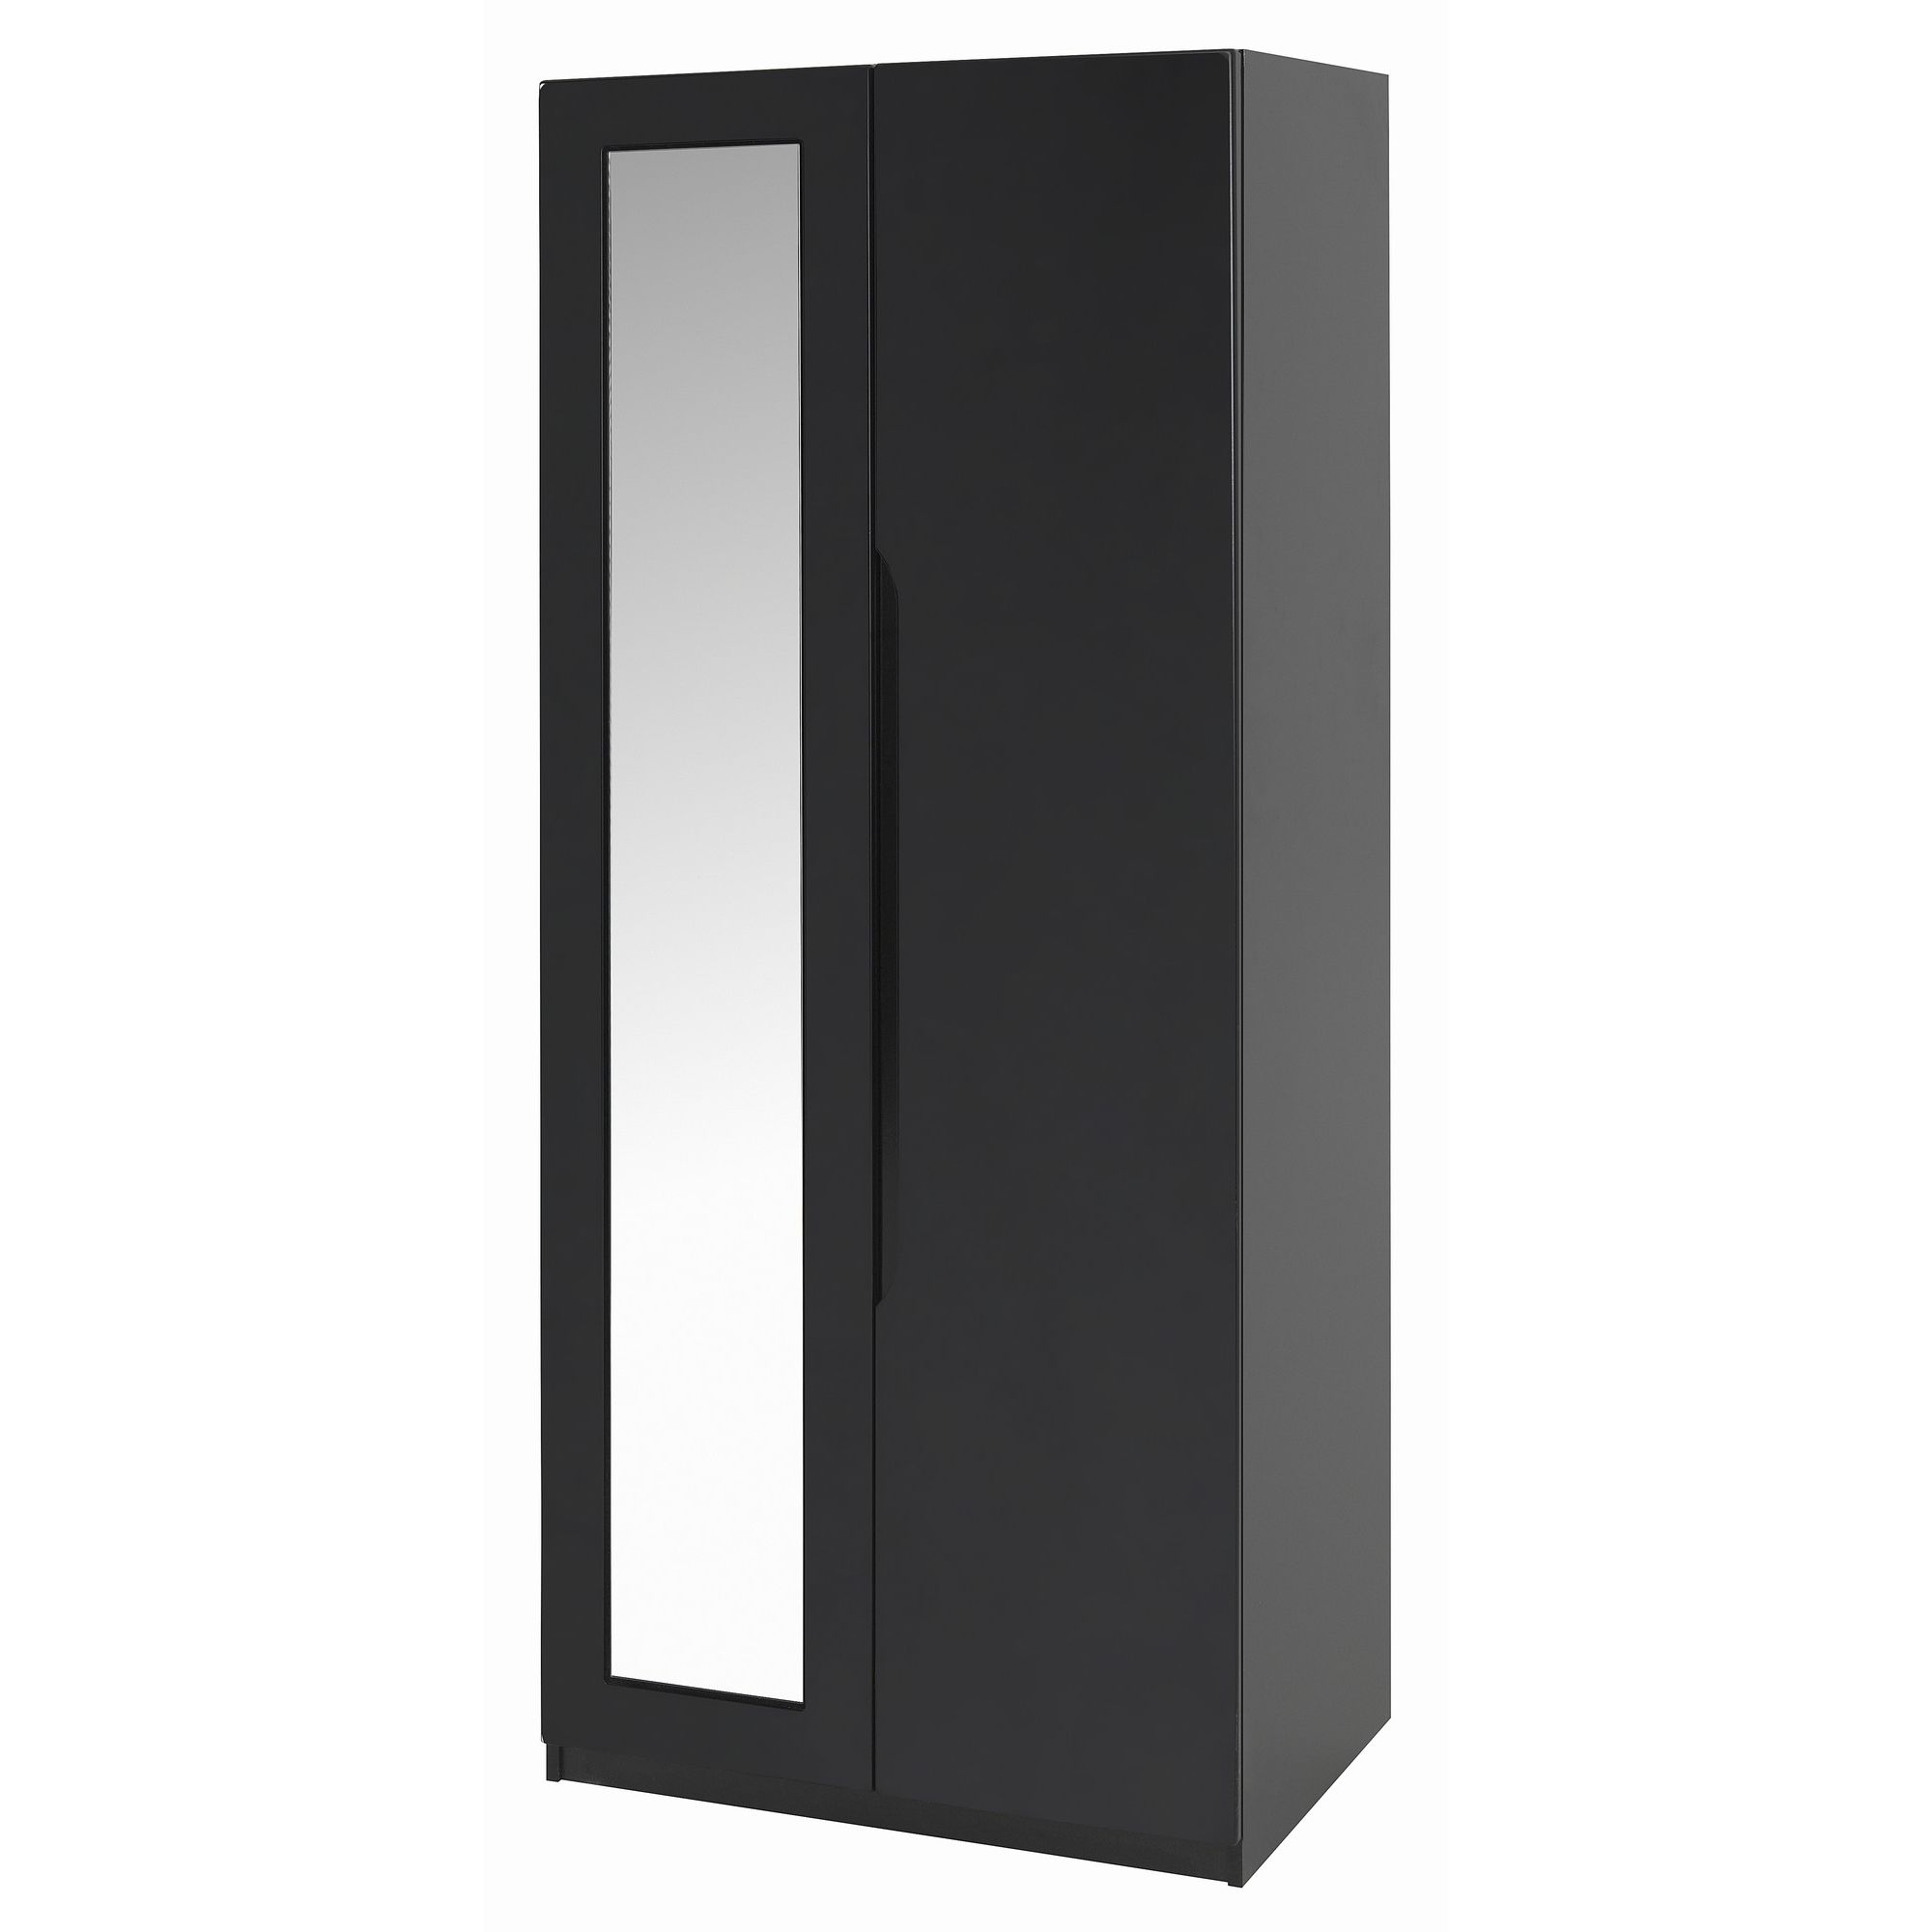 Alto Furniture Visualise Orient Wardrobe with Mirror in High Gloss Black at Tesco Direct